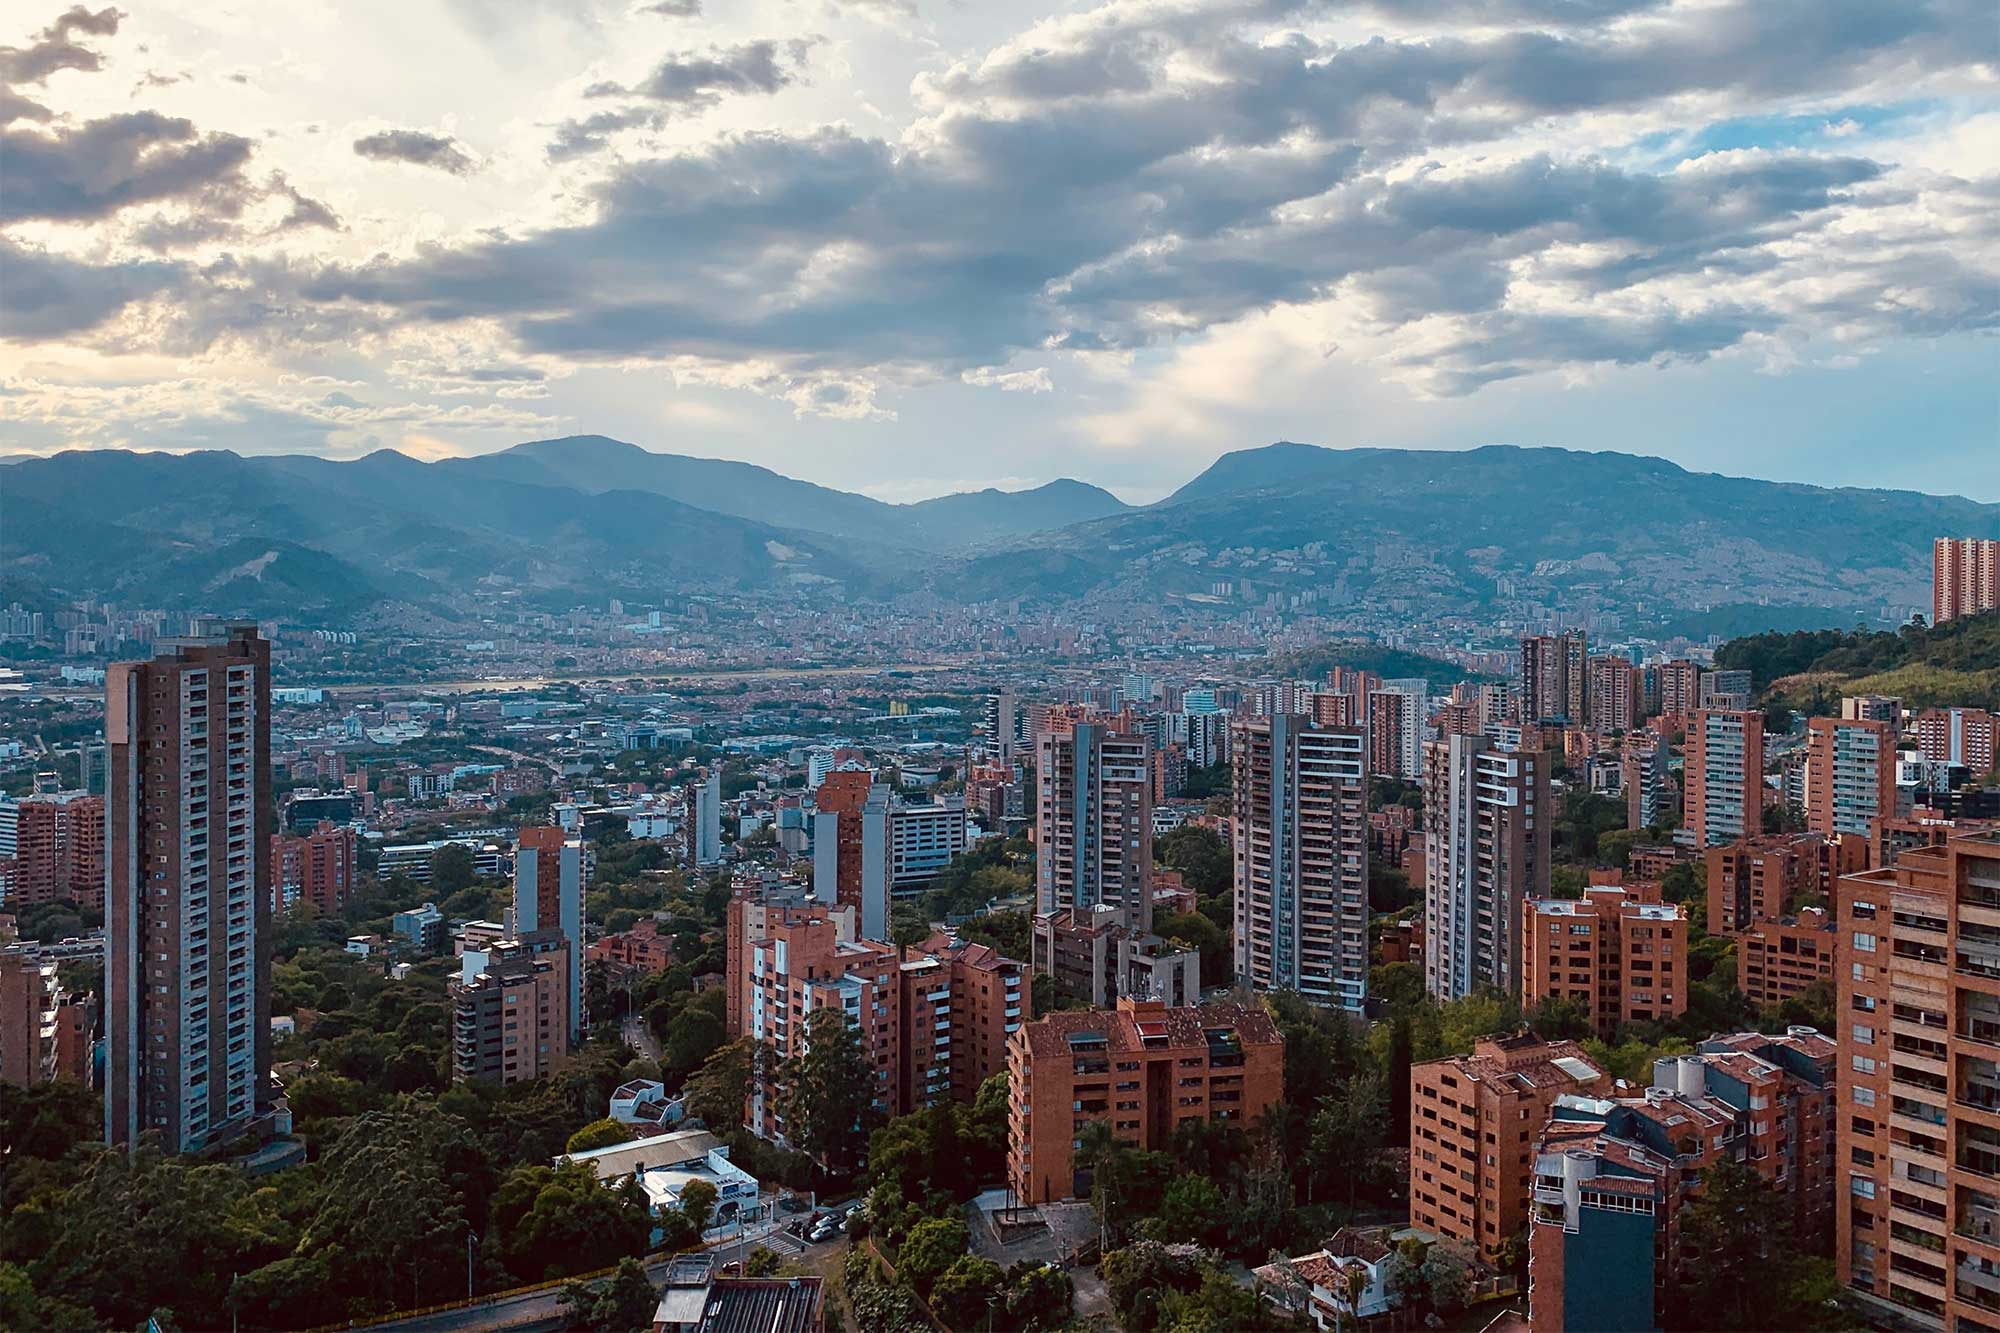 Medellín, Antioquia, Colombia